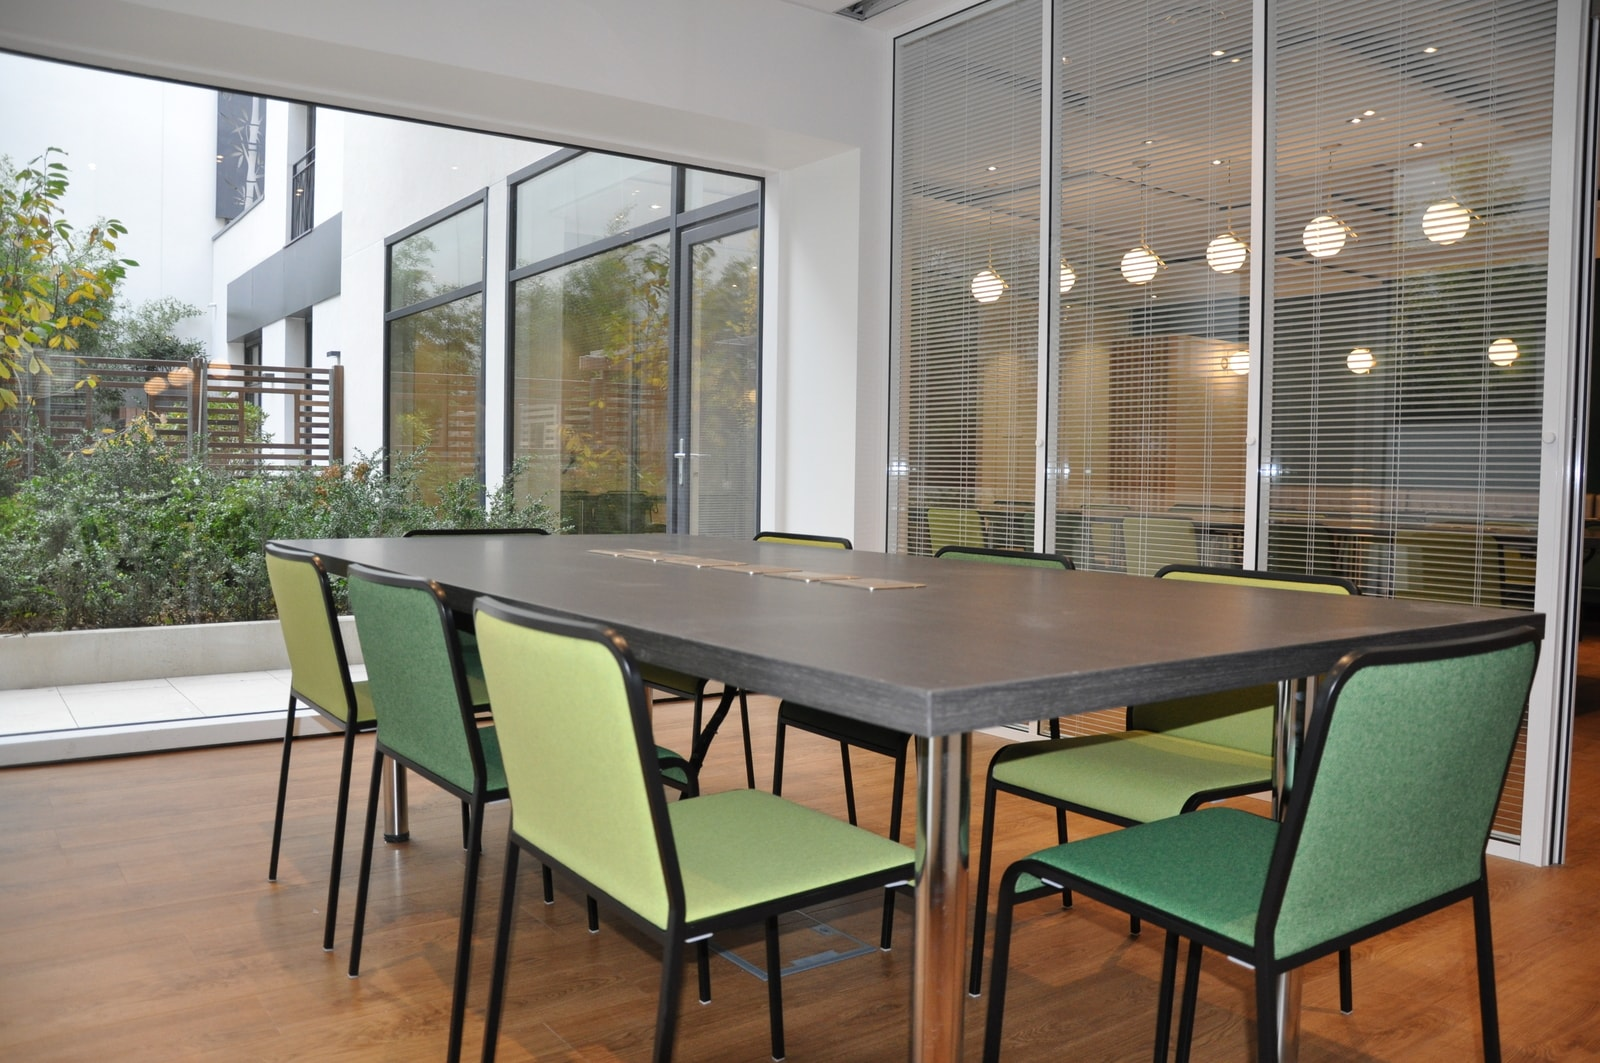 Office space for meetings and presentations